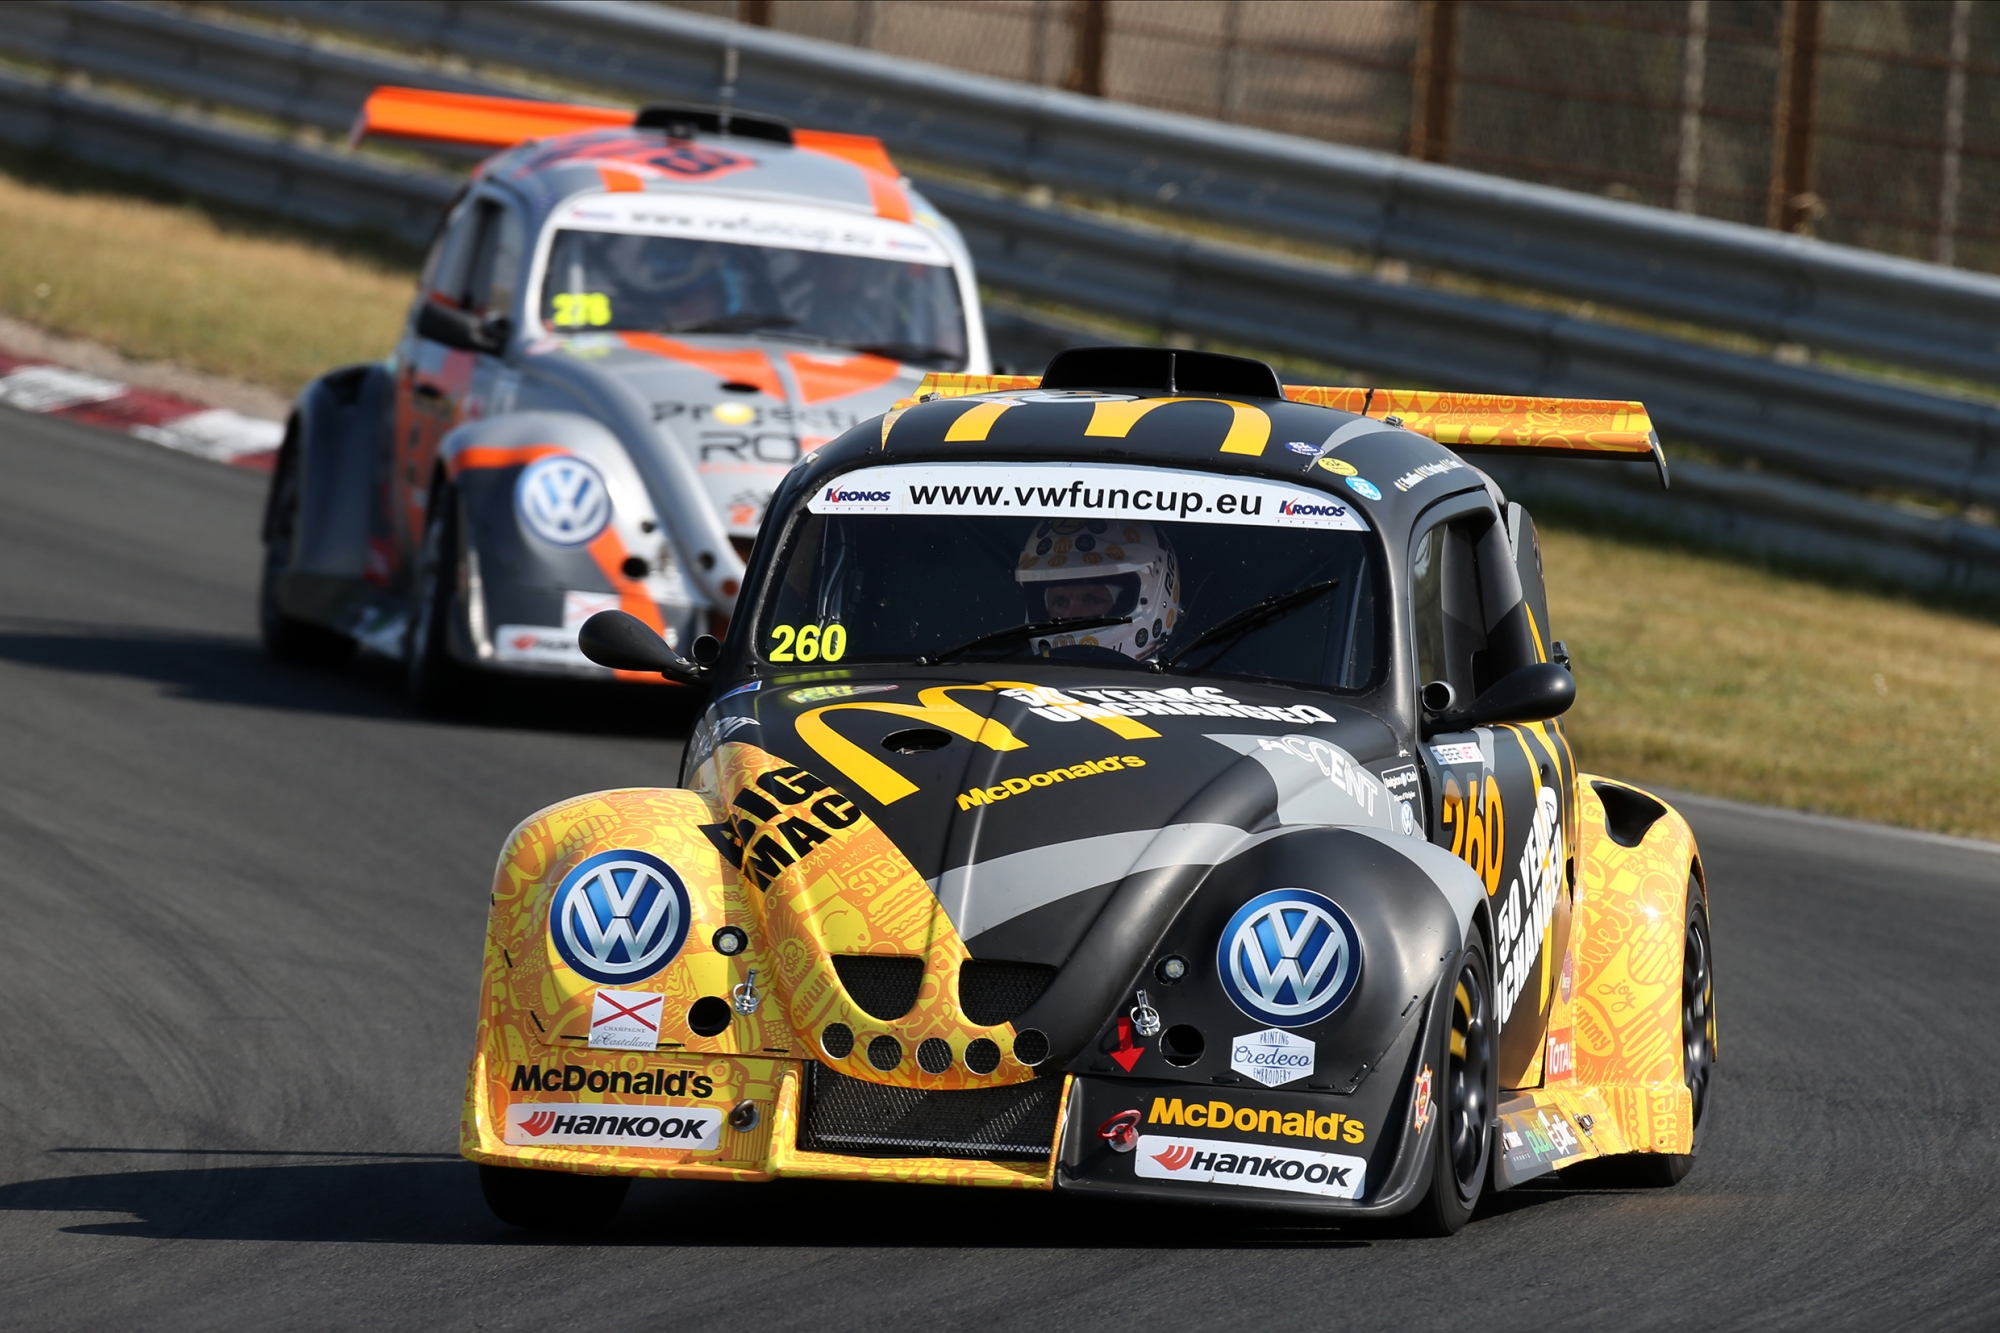 image 1 - McDonald's Racing, Lovin' the VW Fun Cup, encore et toujours !